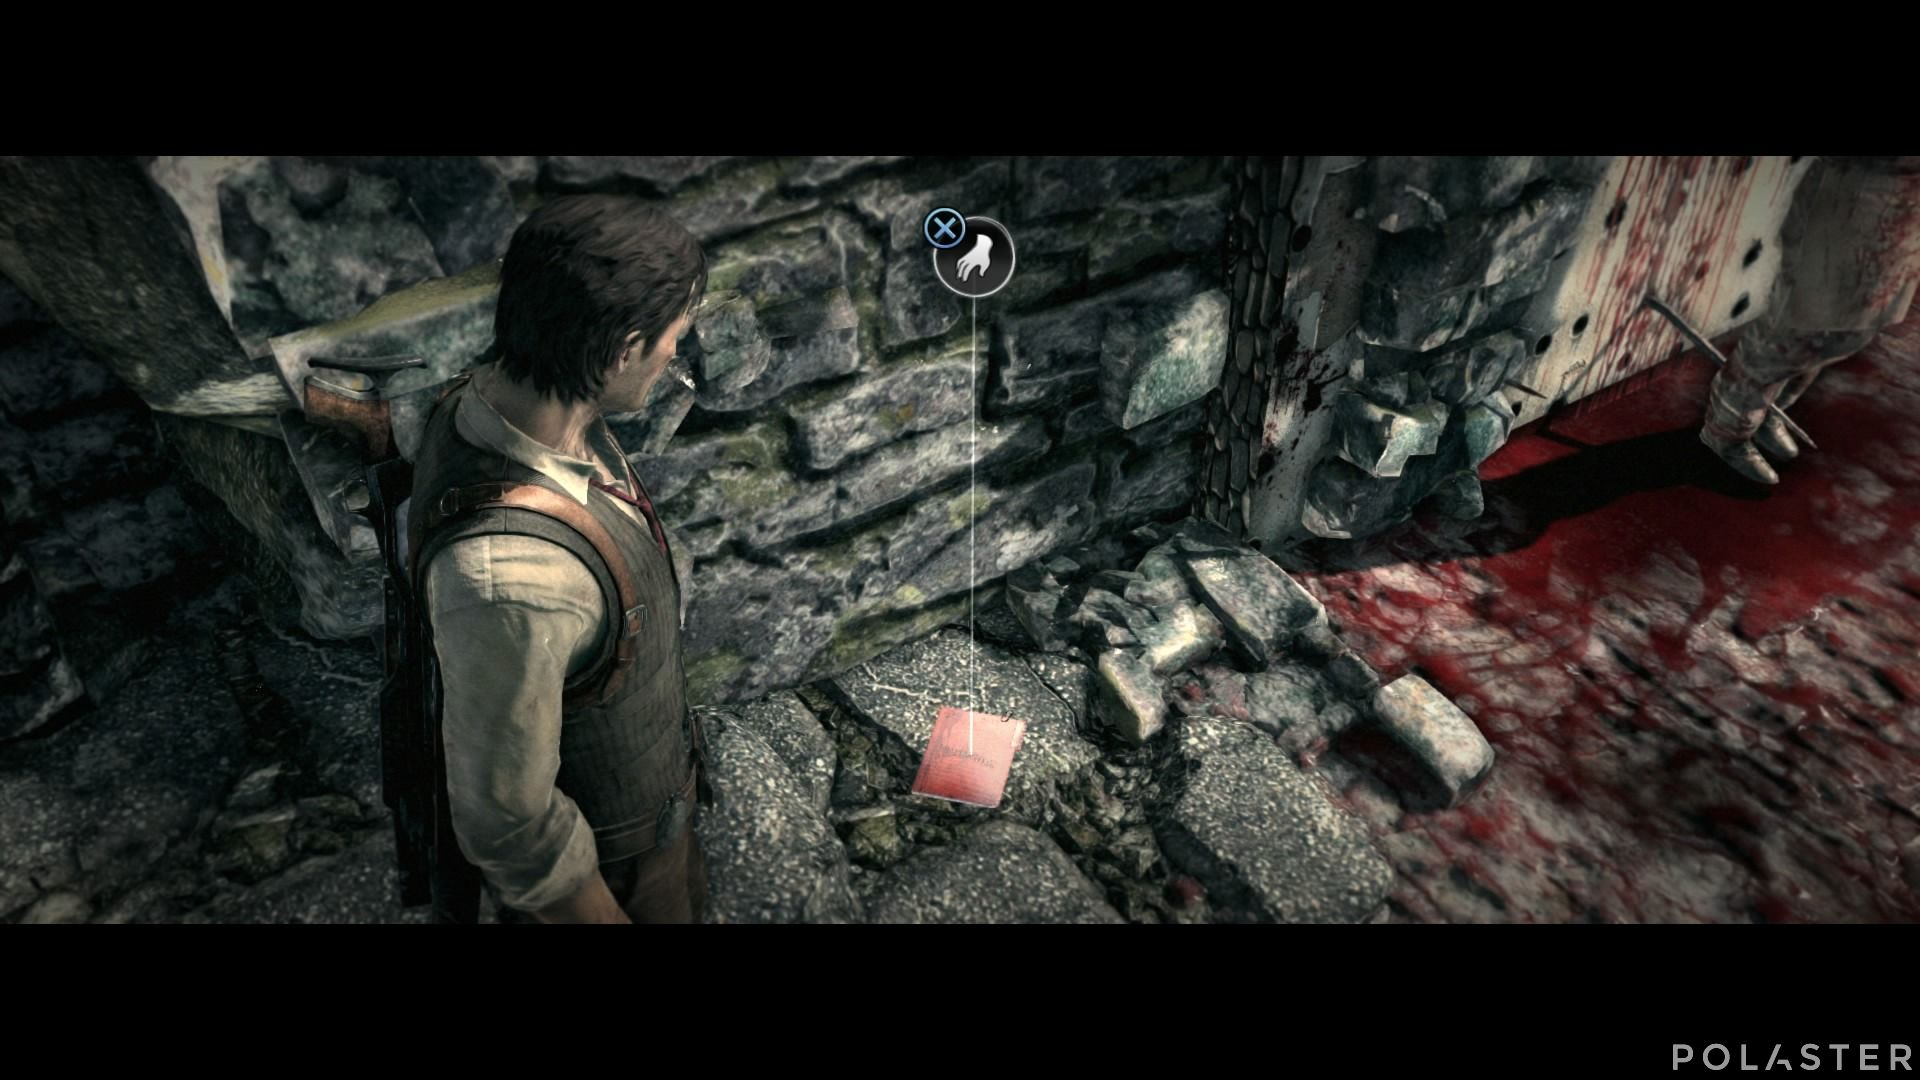 The Evil Within - Coleccionables - Documento: Nota de la cueva